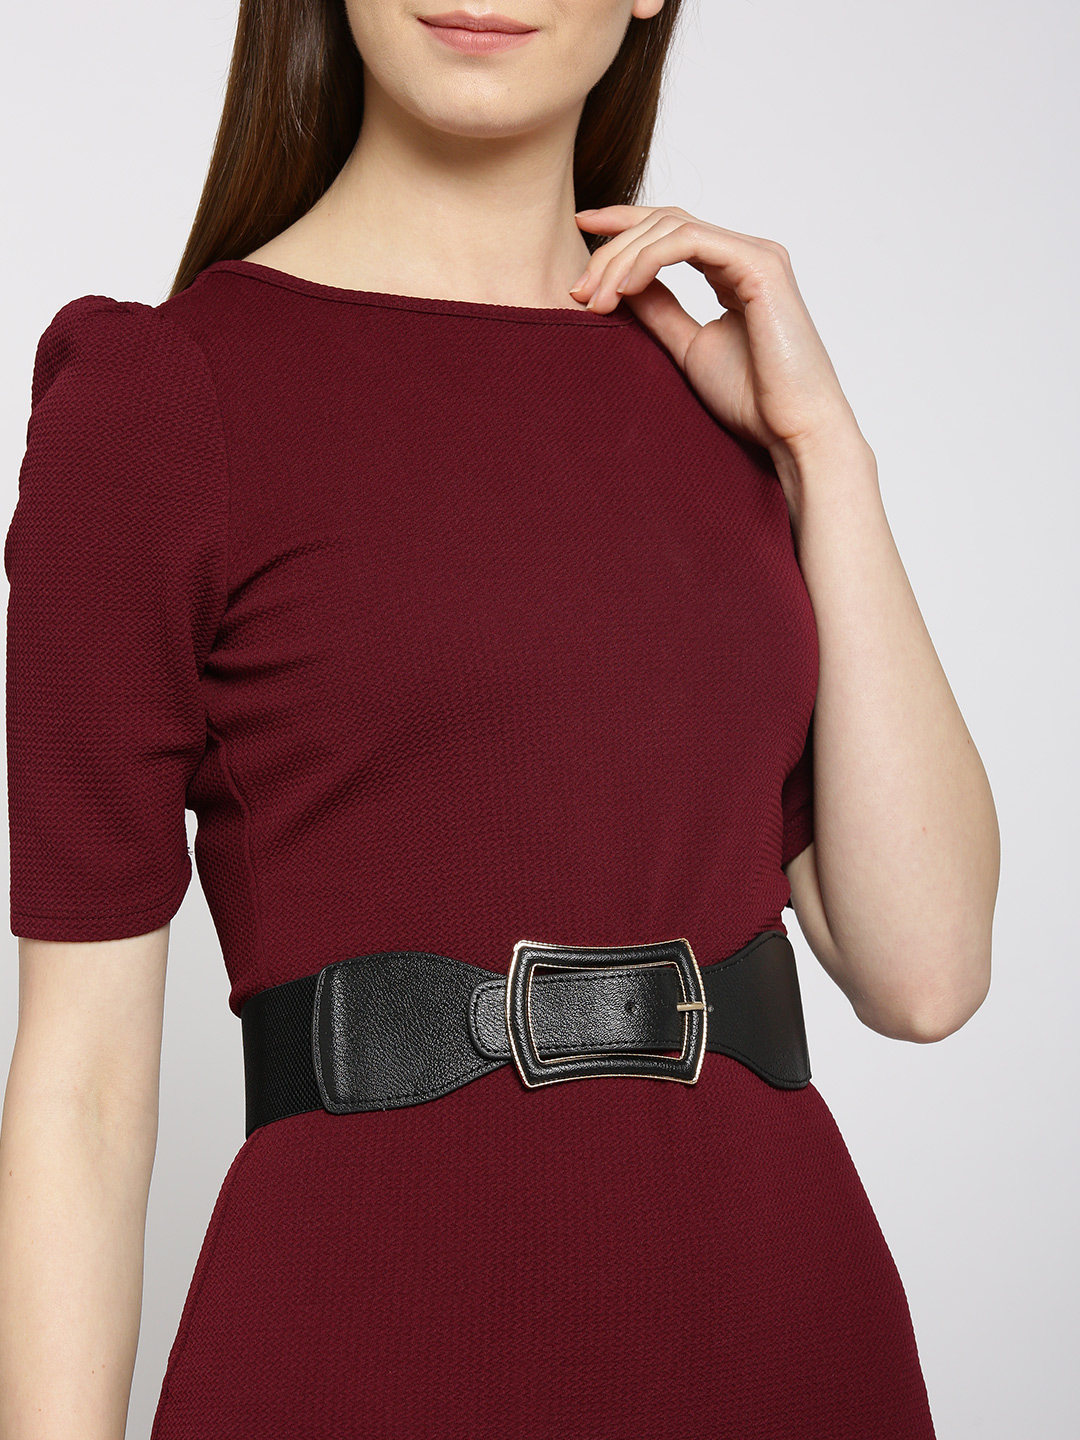 Belts-The Side Curve Waist Belt1